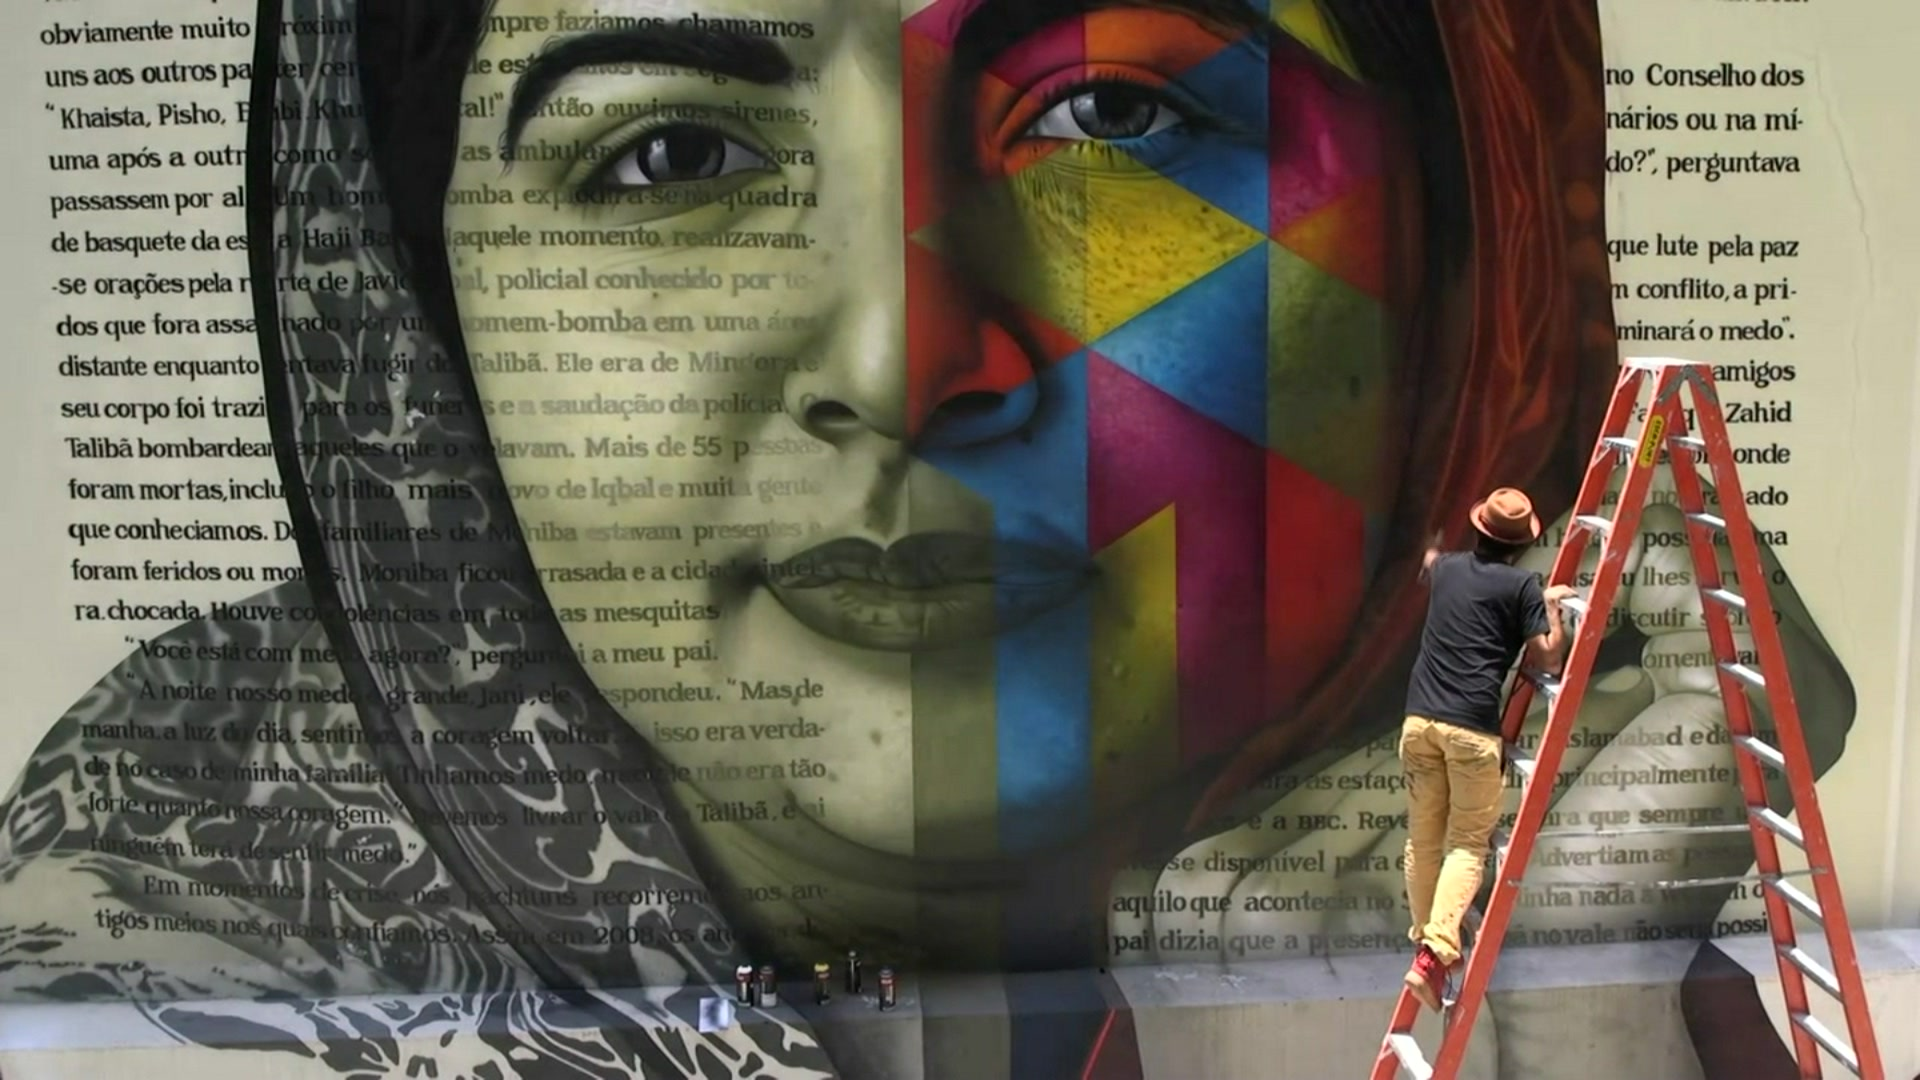 The Brazilian street artist who brings history to graffiti